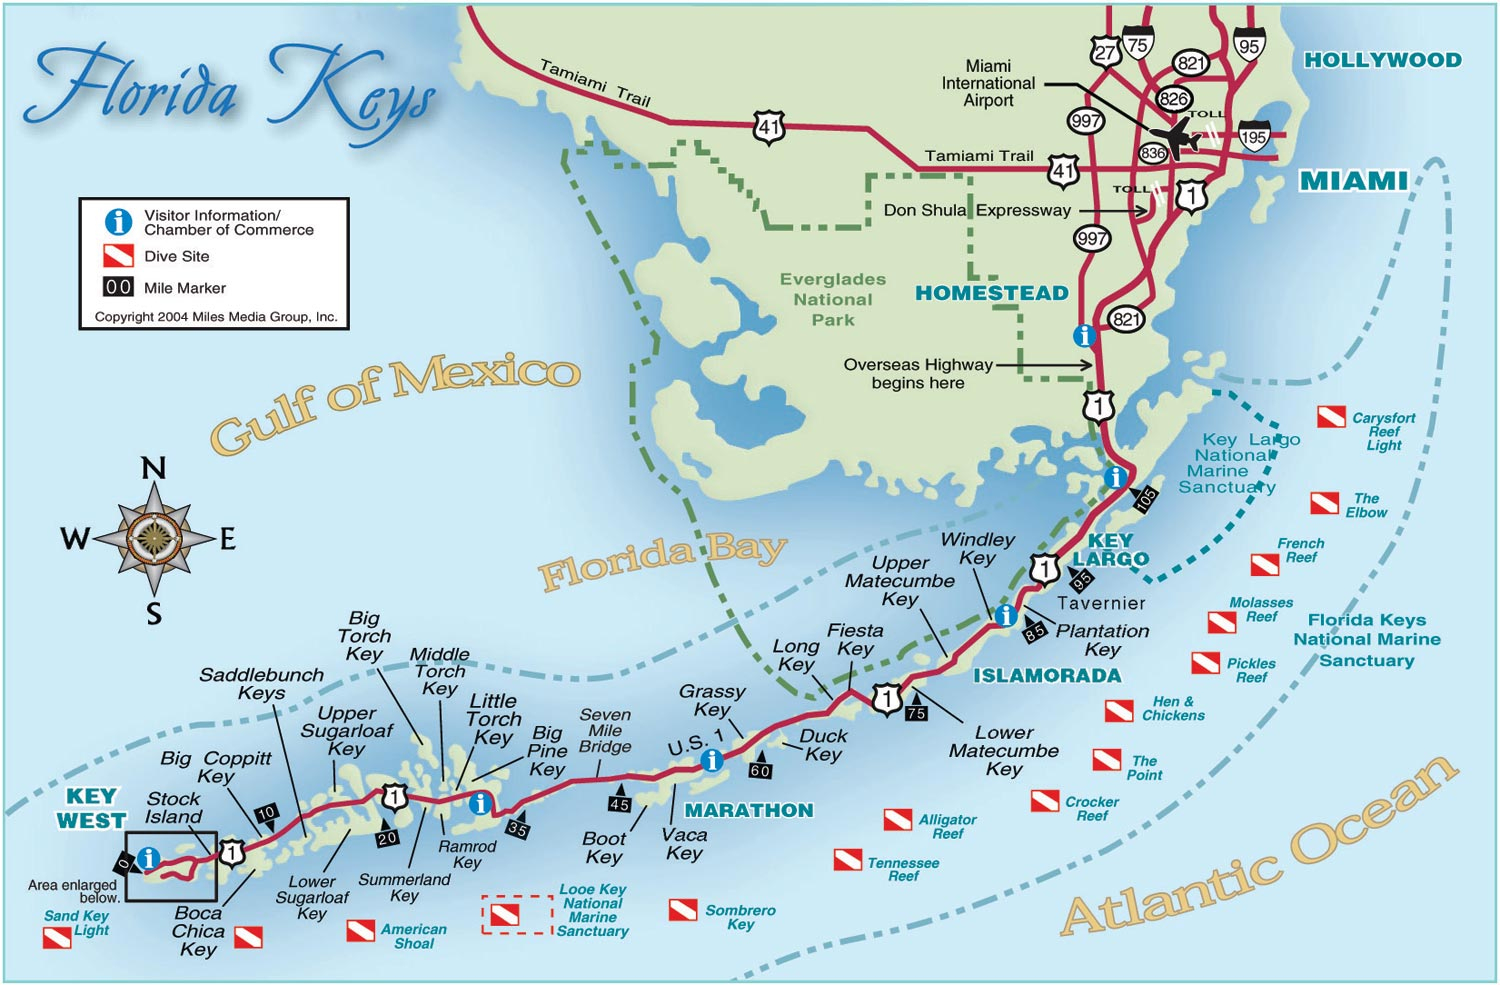 Florida Keys And Key West Real Estate And Tourist Information - Map Of Florida Keys And Miami